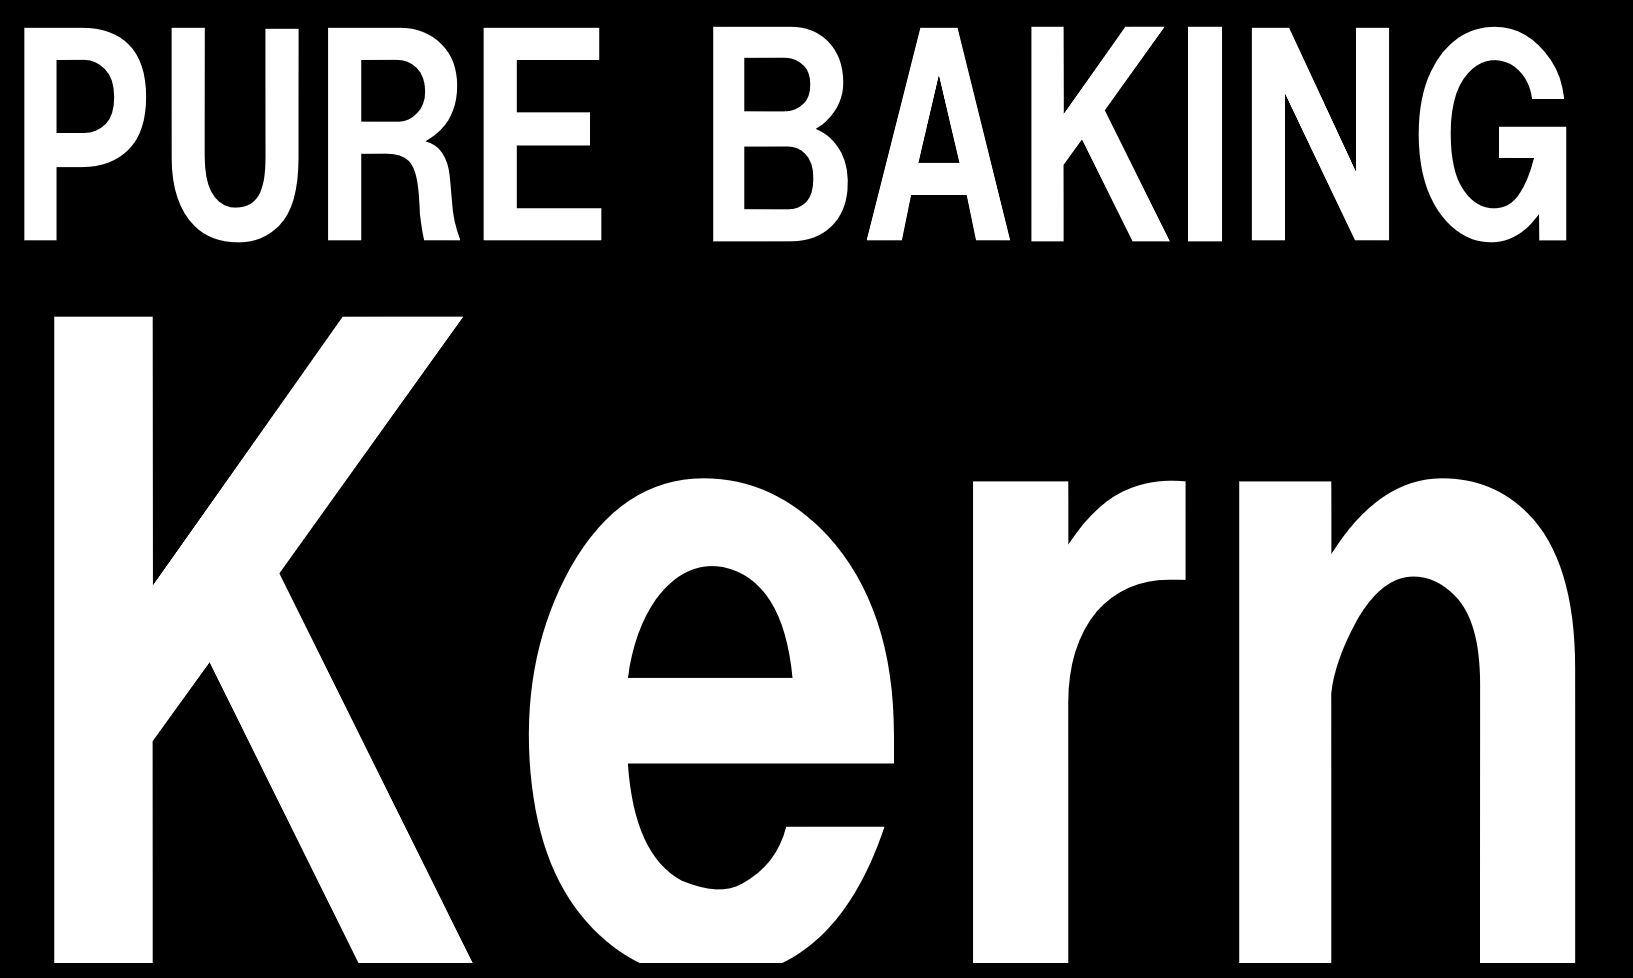 Pure Baking Kern